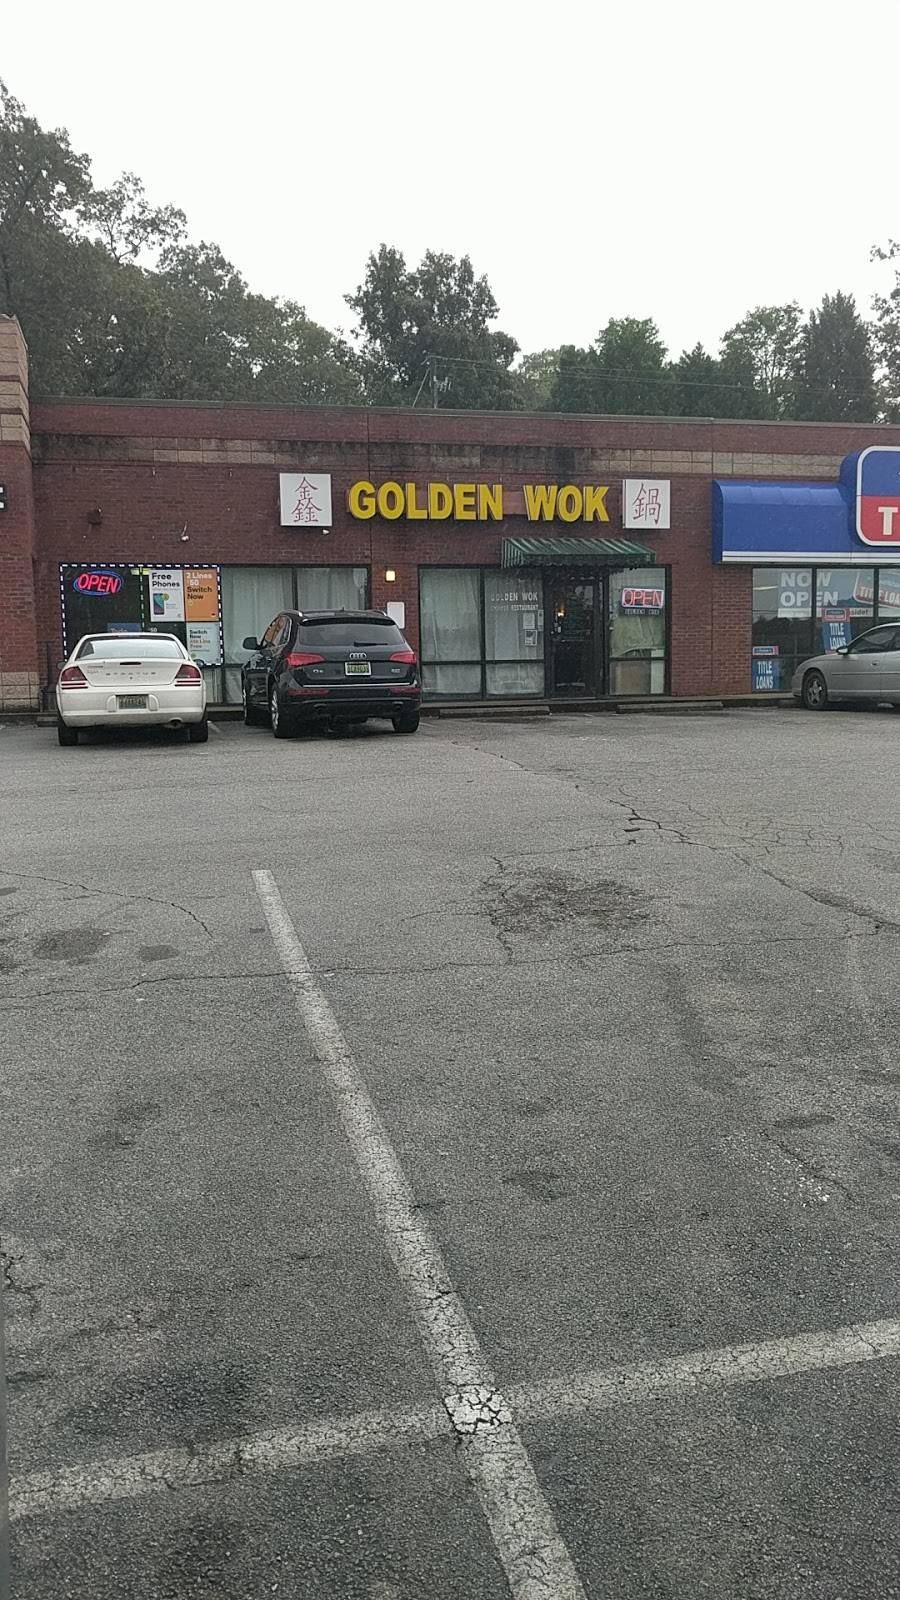 Golden Wok | restaurant | 1421 Forestdale Blvd # 113, Birmingham, AL 35214, USA | 2057987288 OR +1 205-798-7288